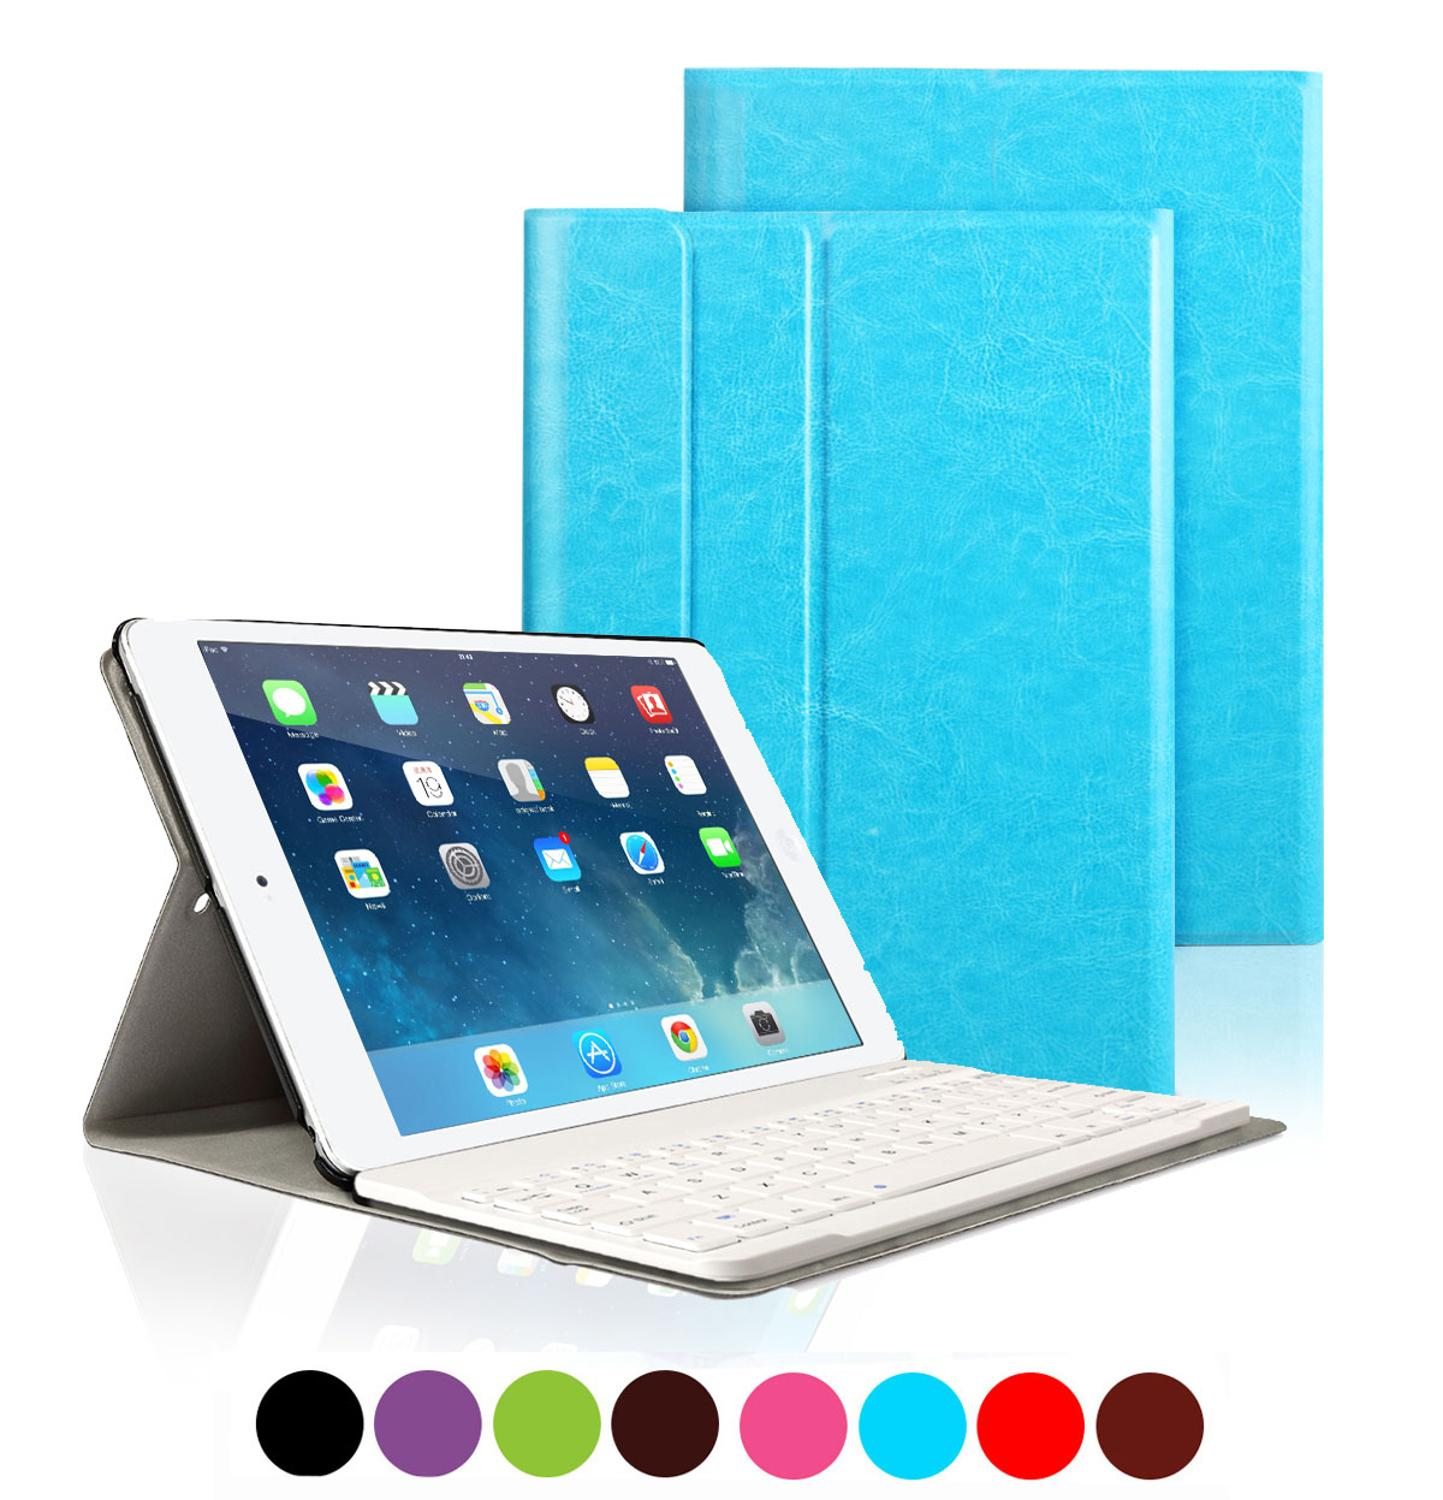 PU Leather Bluetooth Keyboard Case For iPad 2017 2018 / iPad Air 1 2/Pro 9.7 Magnetic Detachable Anti-slip Cover For iPad 5 6